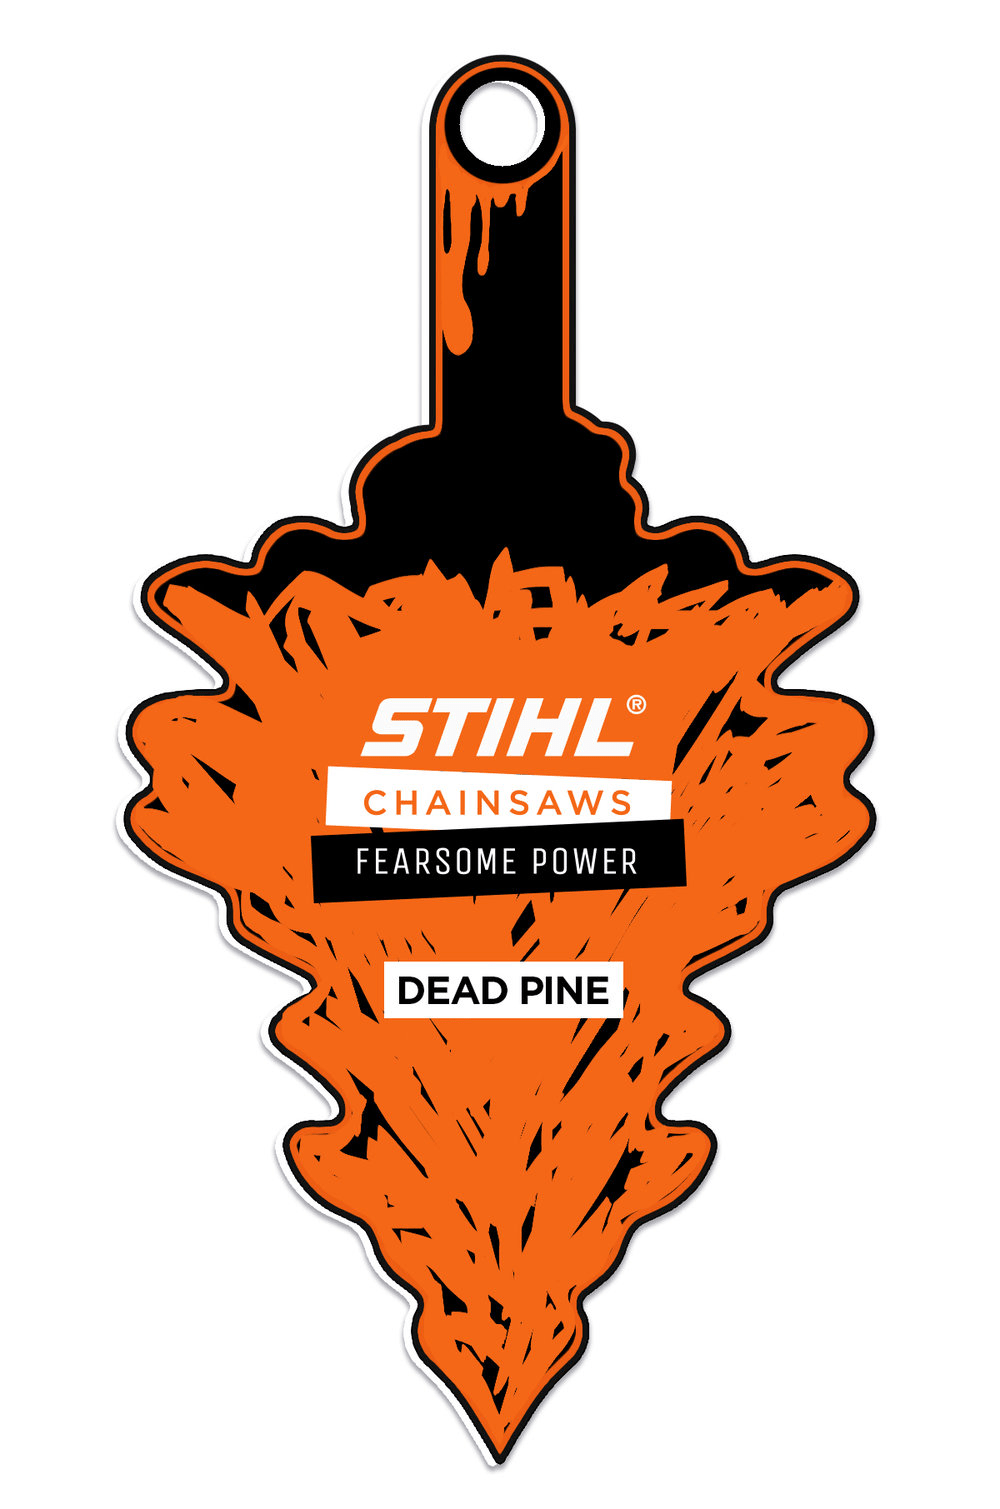 Stihl - Fearsome Power